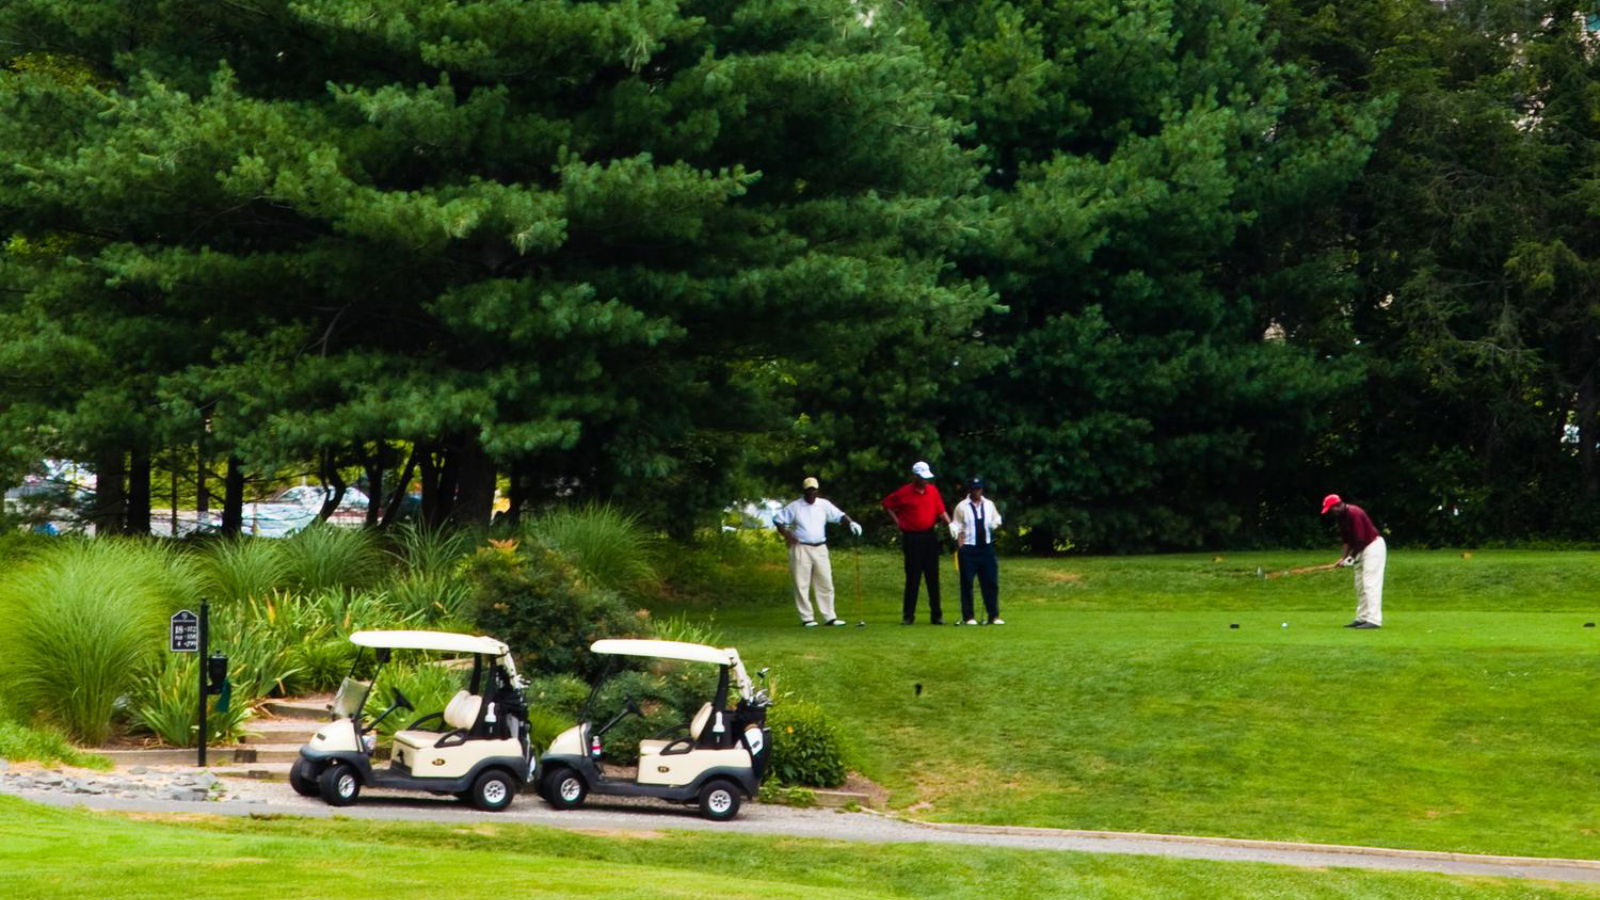 Things to do in Northern Virginia | Reston National Golf Course